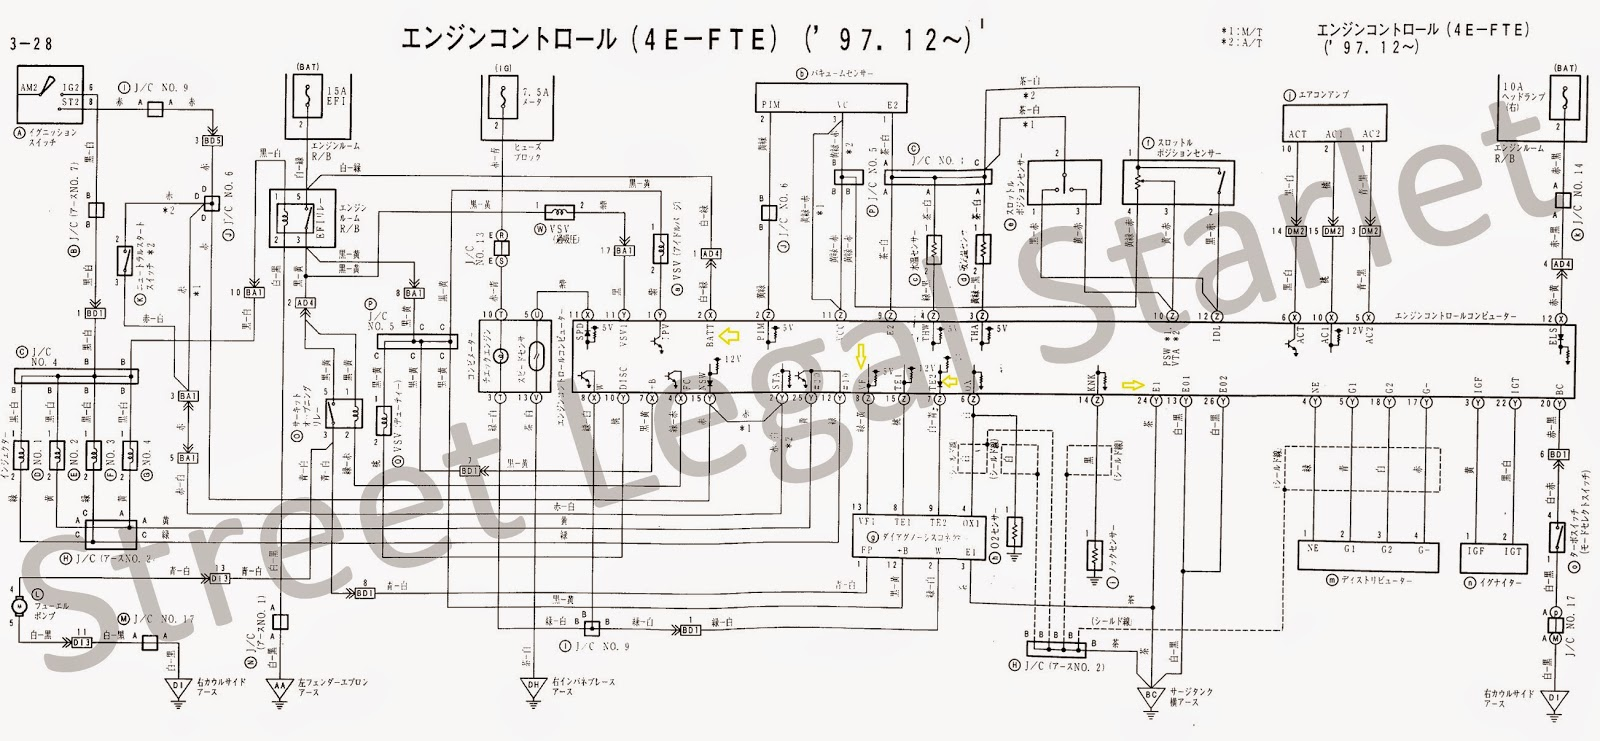 Ep82 ecu wiring diagram